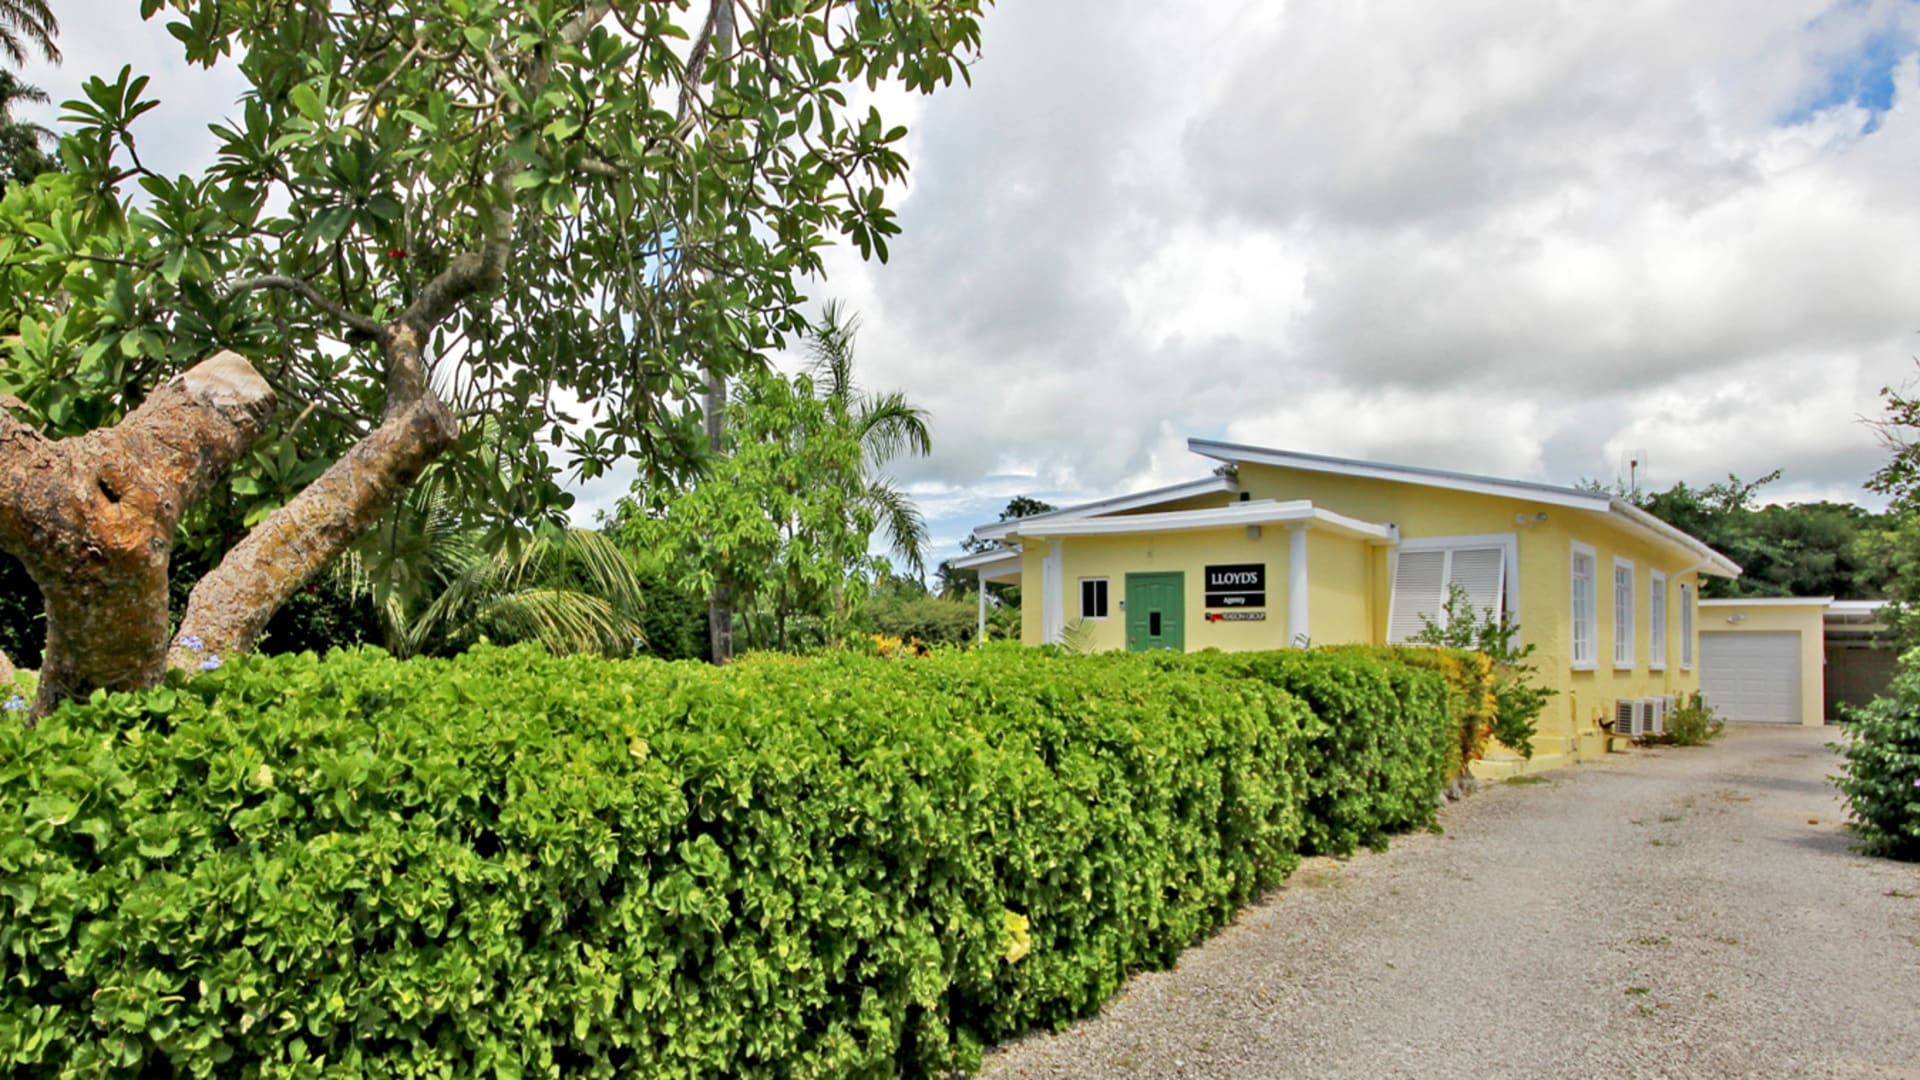 Yorkshire House Office Barbados Luxury Homes amp Real Estate For Sale Villas